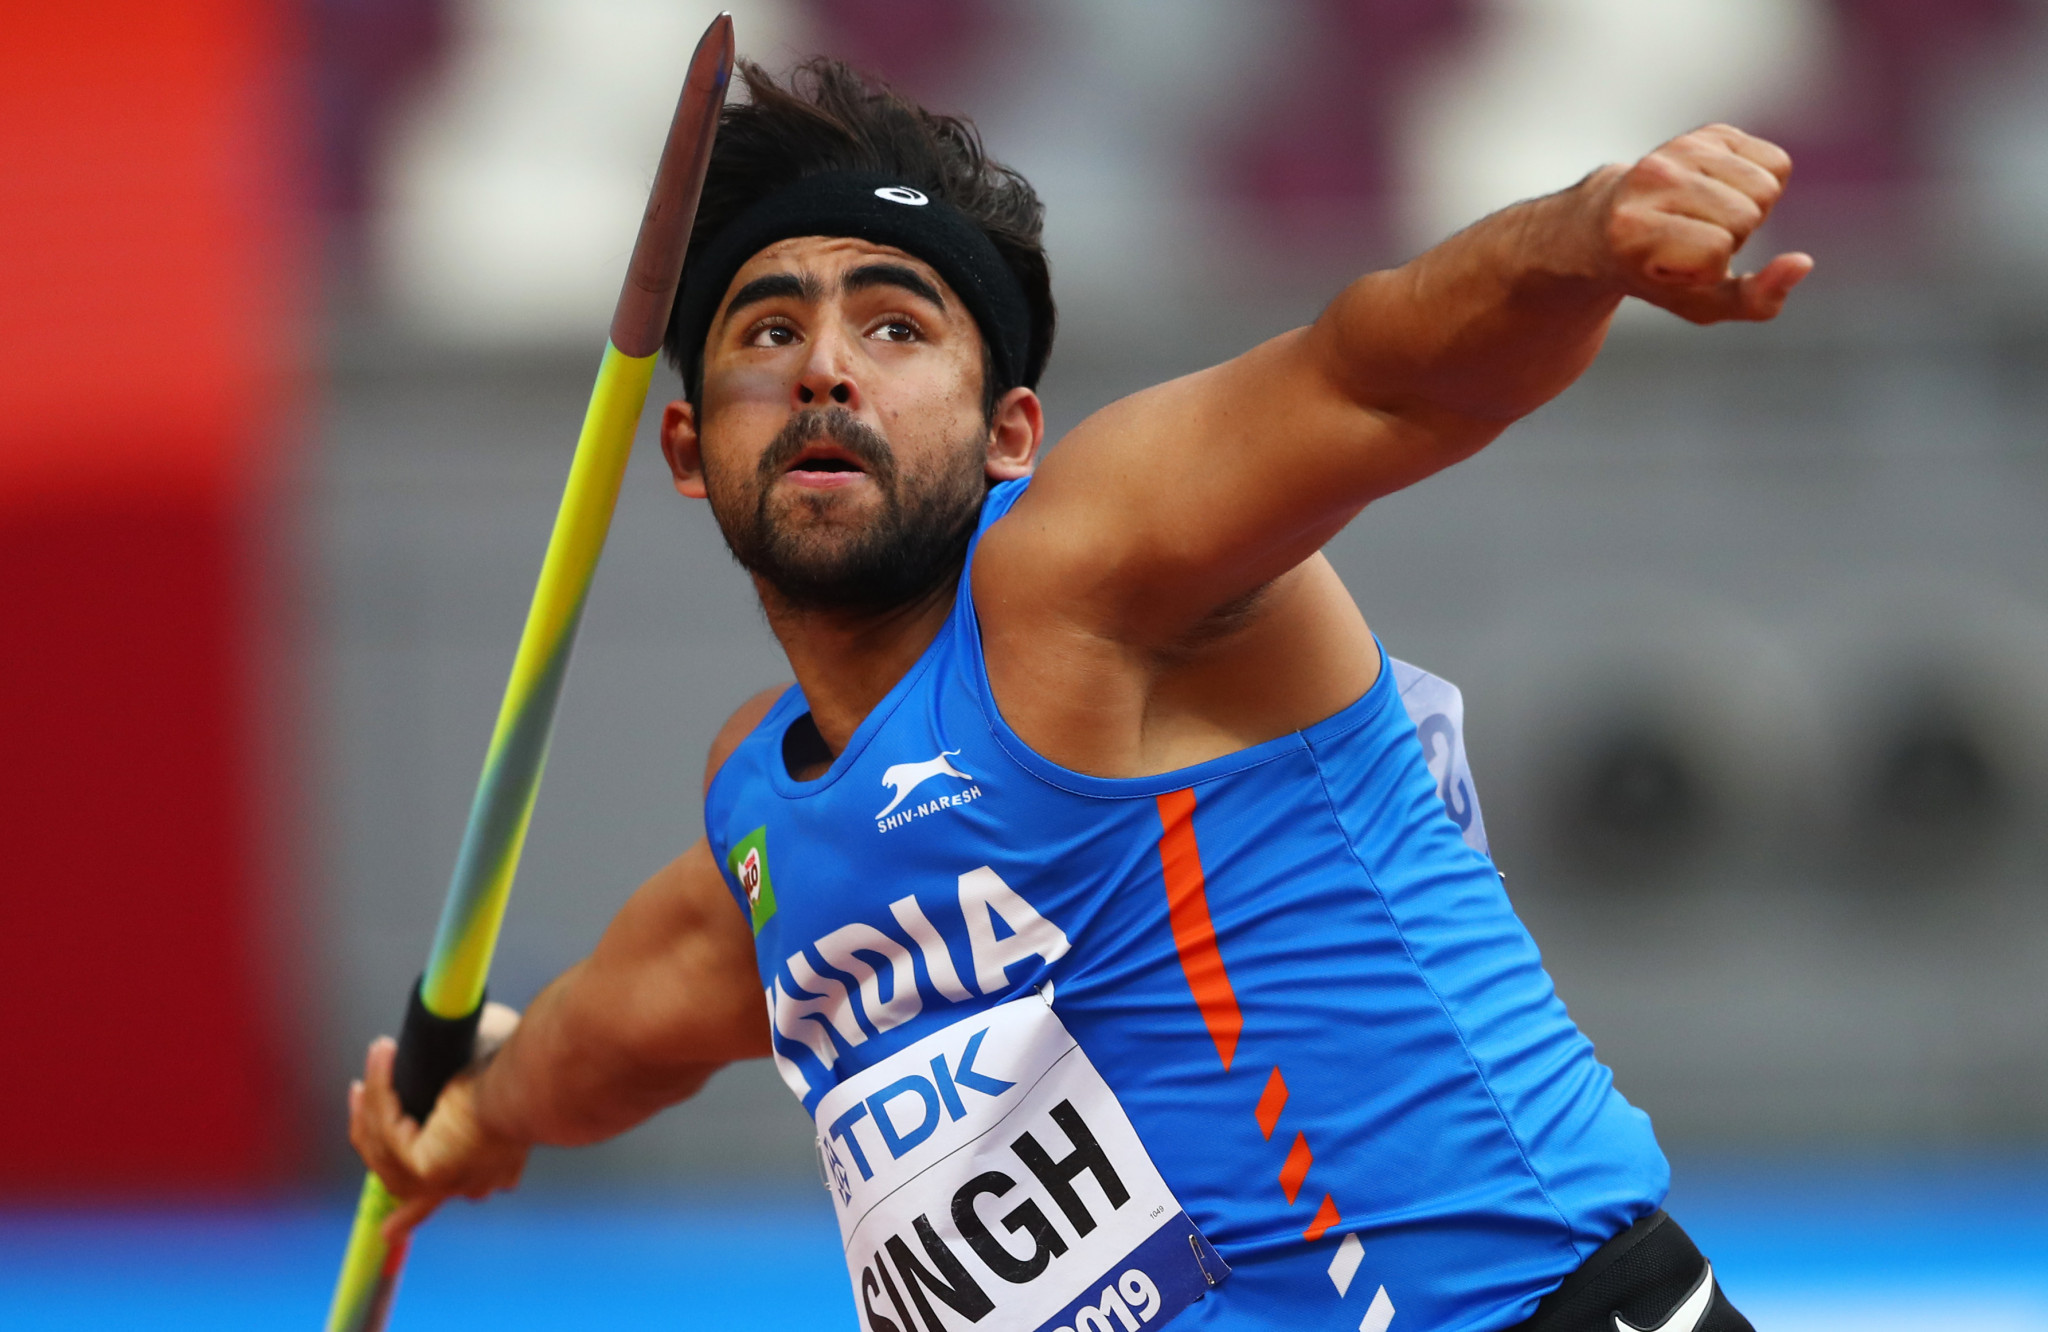 Shivpal Singh is set for his first Olympic Games ©Getty Images